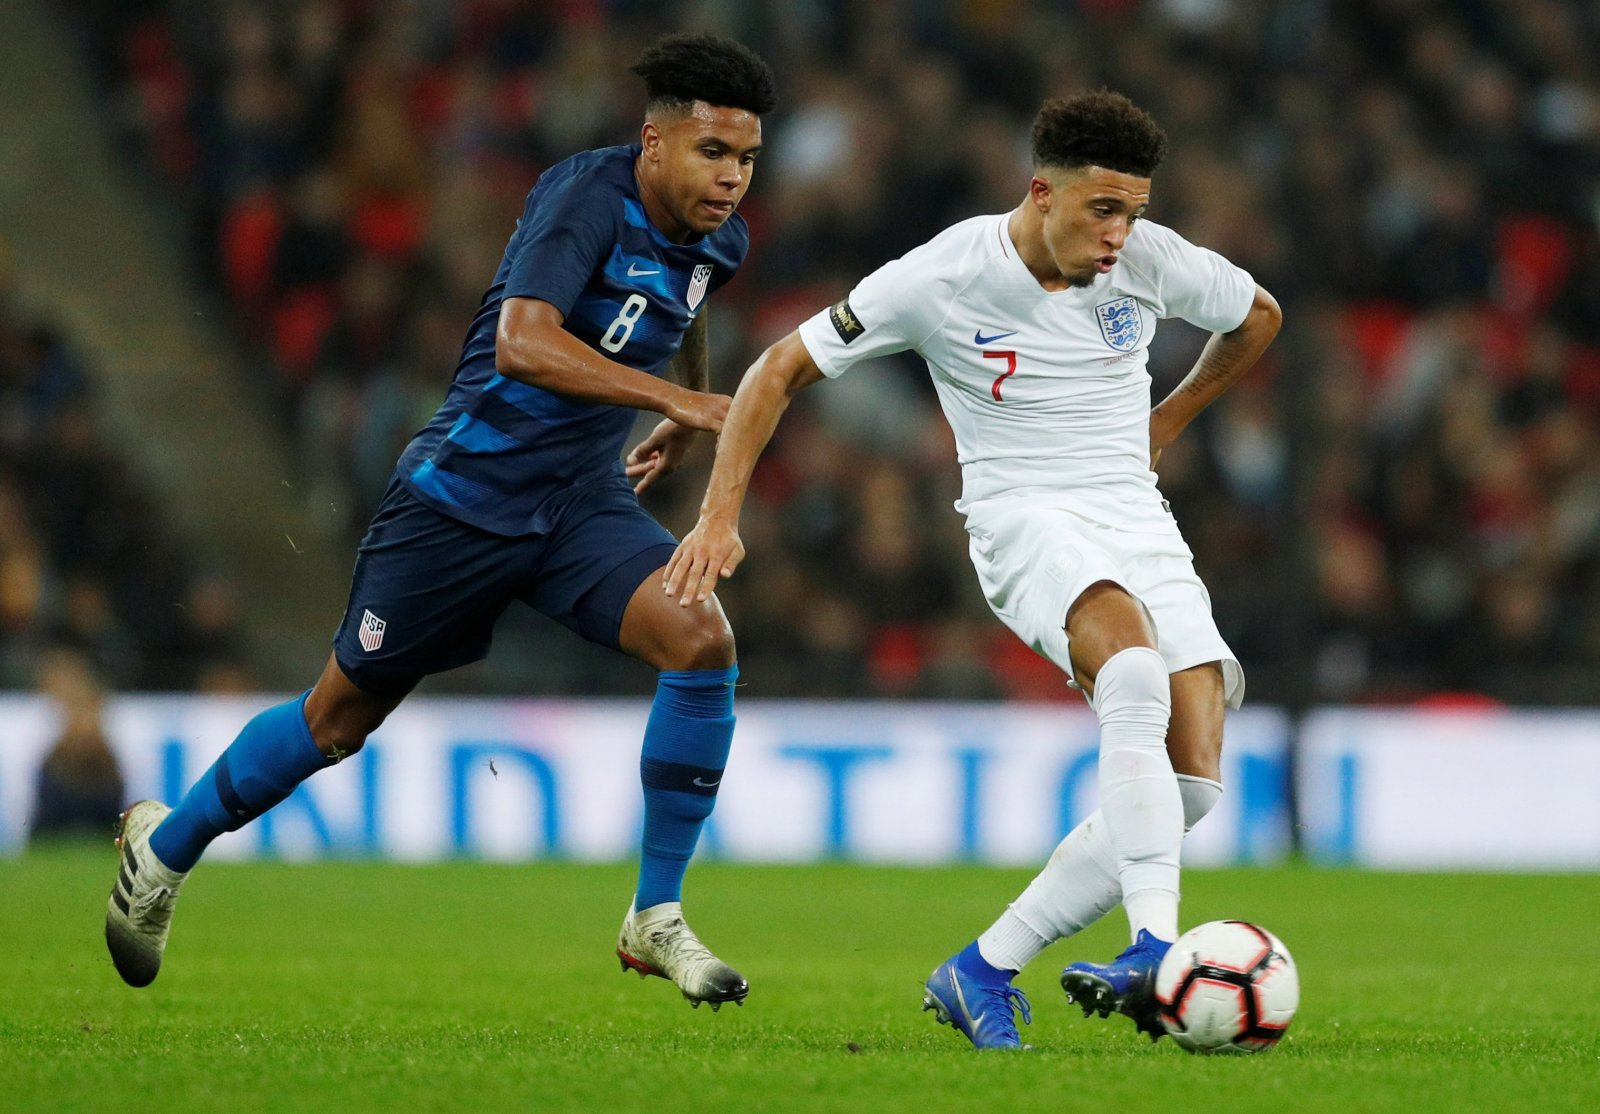 Jurgen Klopp can turn Jadon Sancho into a real world beater